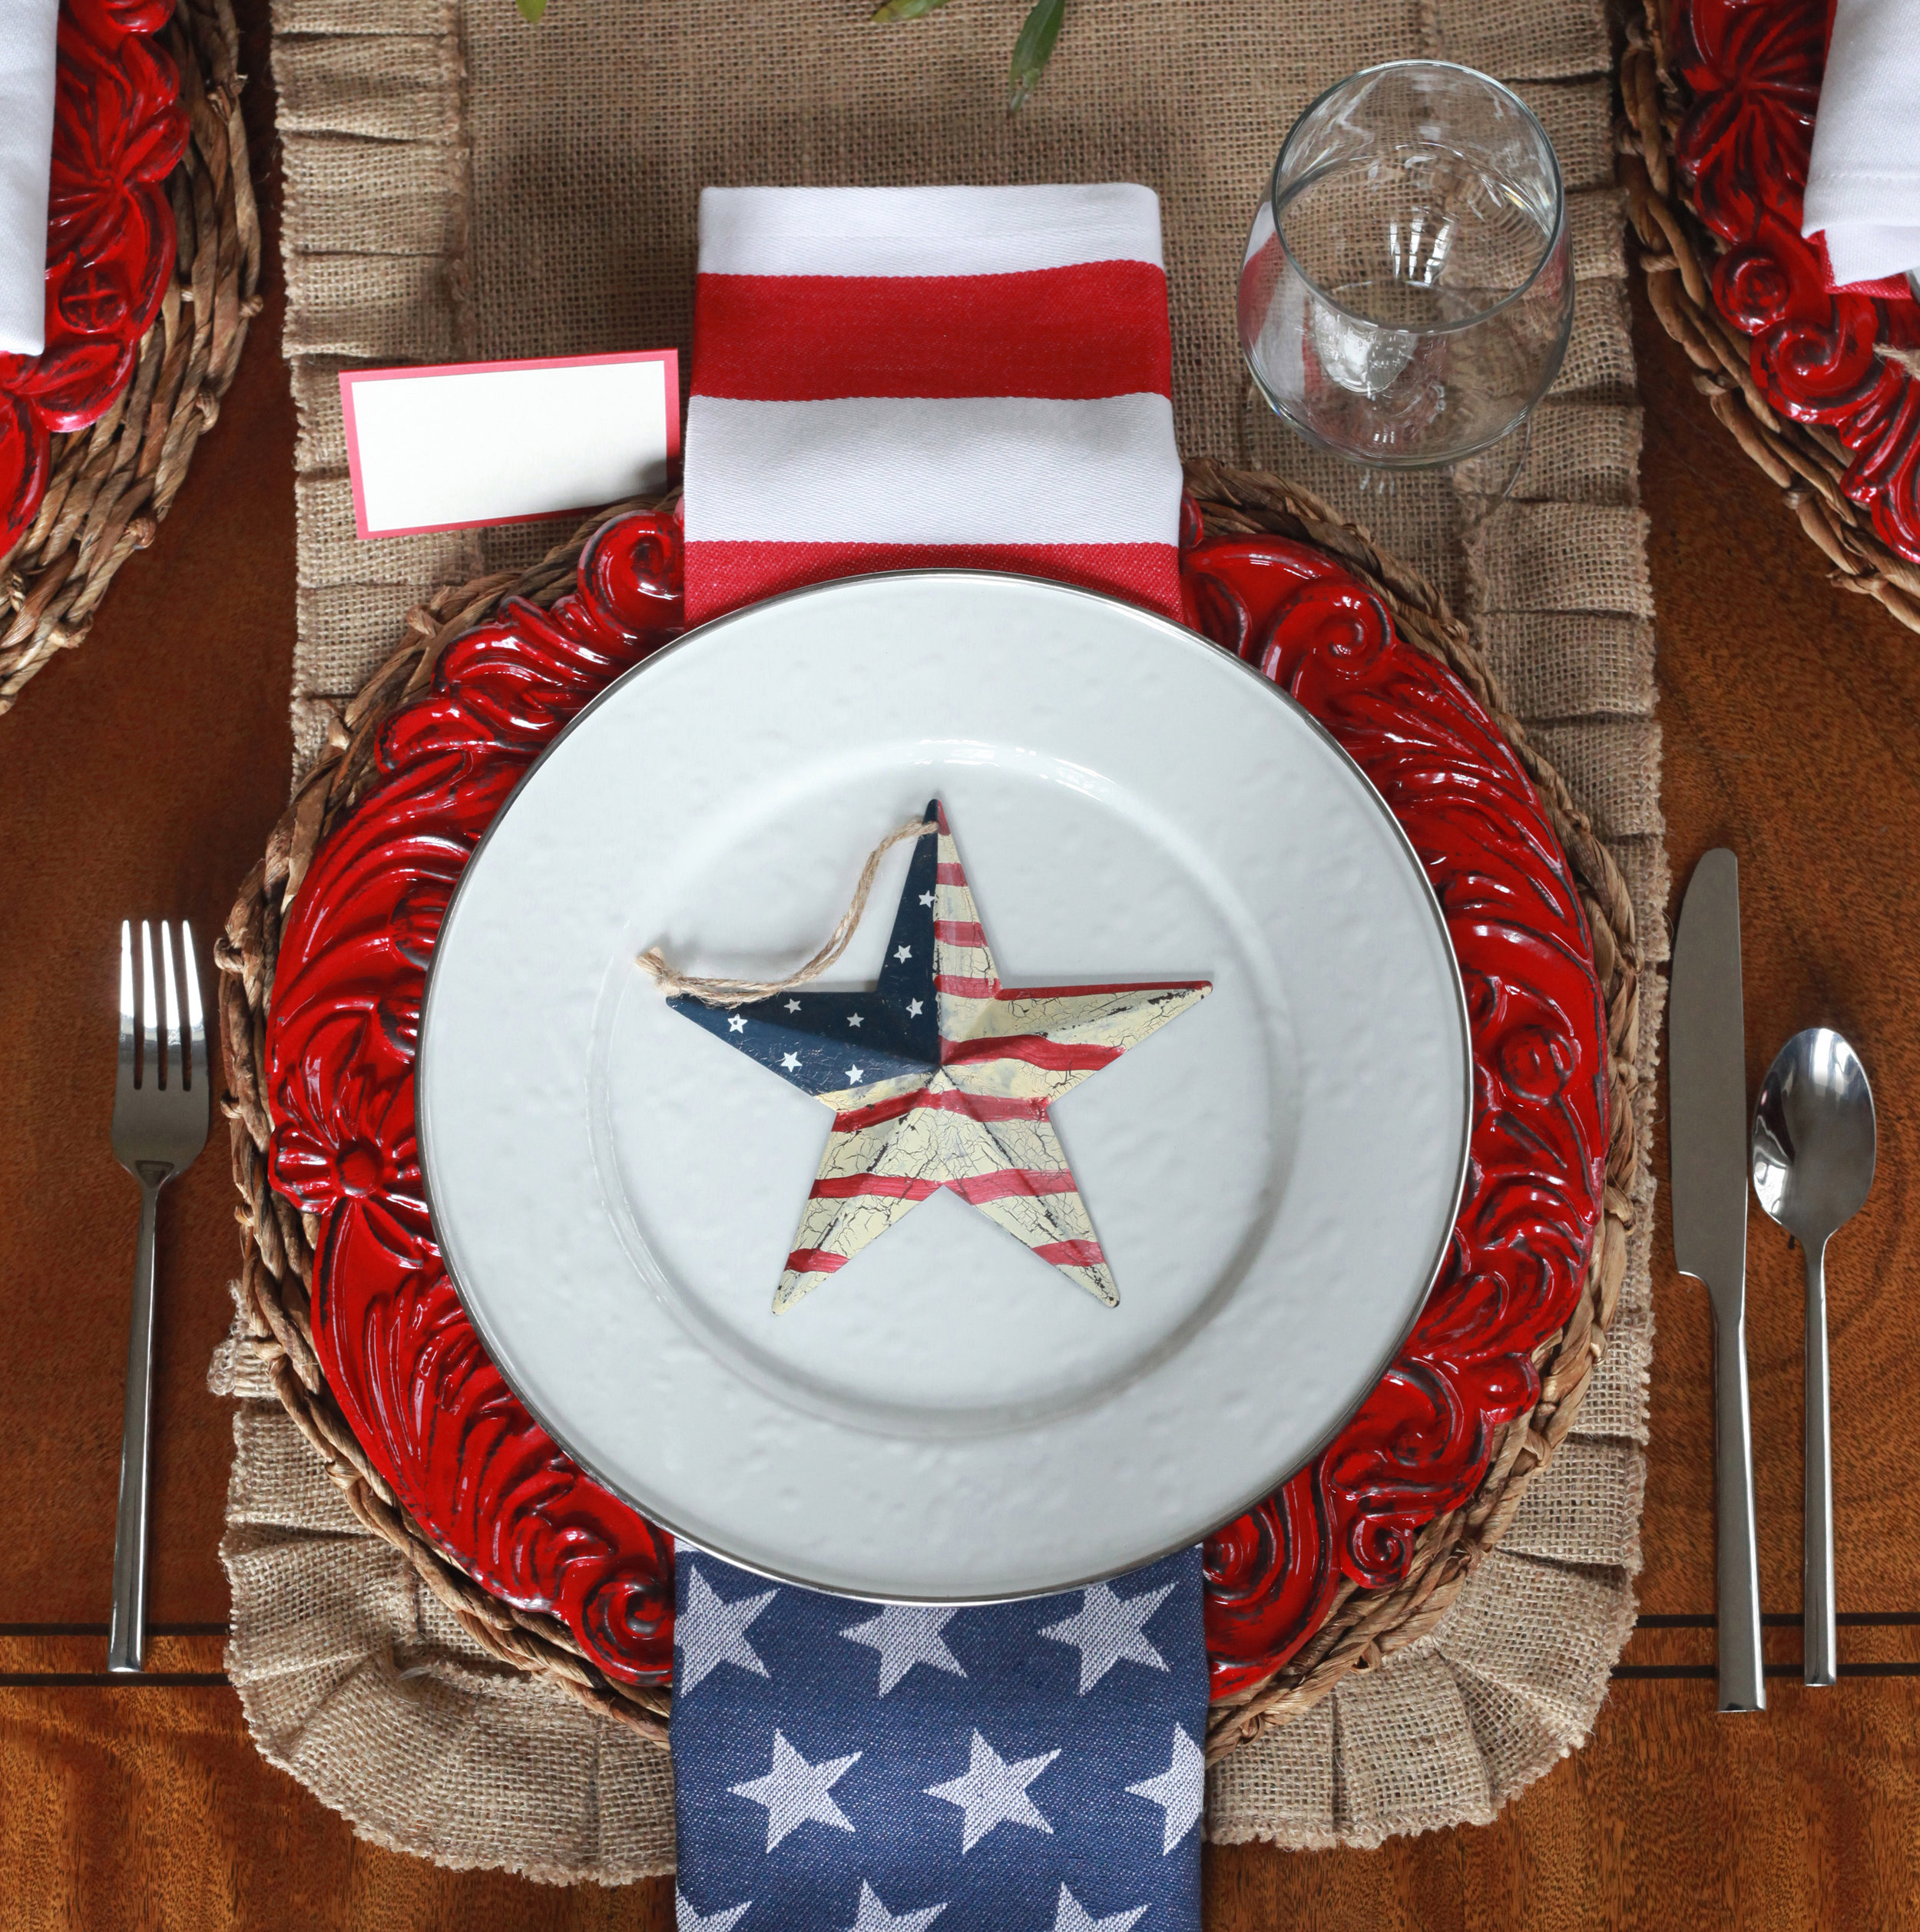 Stars and Stripes - Tablescape Includes:Burlap table runner, rattan charger, plate,  vibrant red charger, stars and stripes napkin, silver rimmed plate, star table accessory, red rimmed place card.$14.99 per TablescapeOur Stars and Stripes tablescape with launch your patriotic party as you celebrate with family and friends! Just add the fireworks to end with a bang!